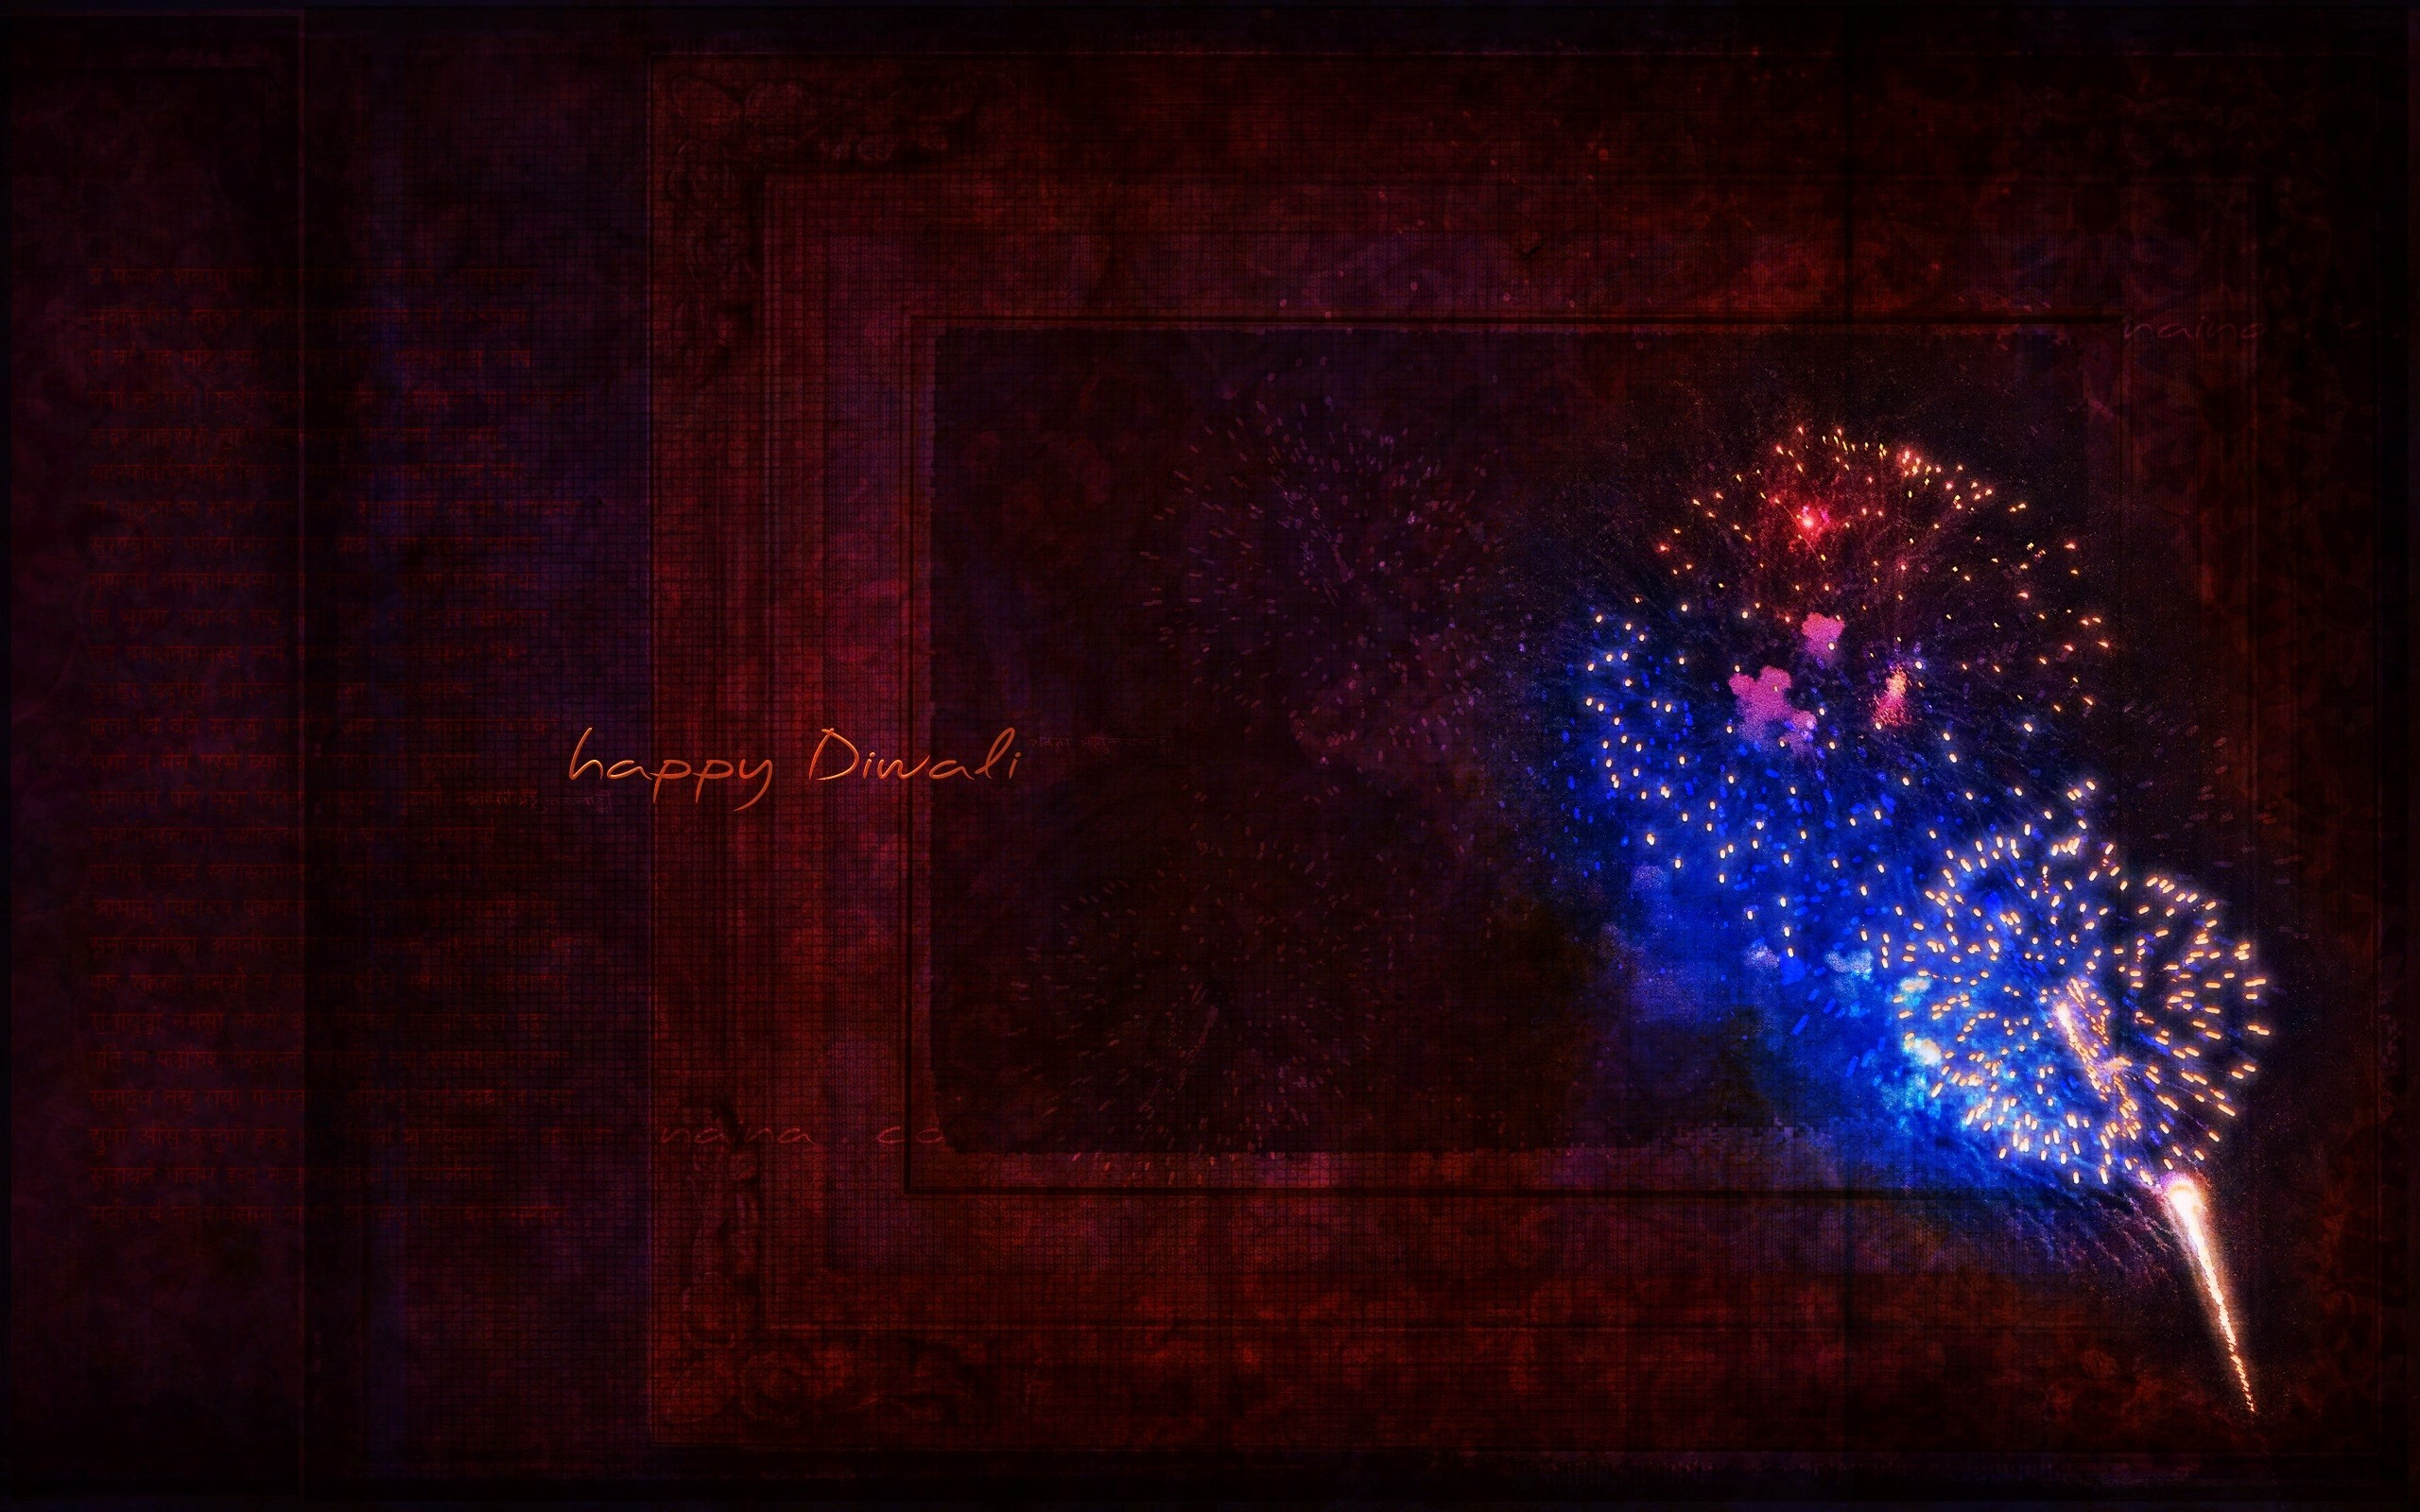 Happy Diwali Wallpaper With Black Background Hd Wallpapers